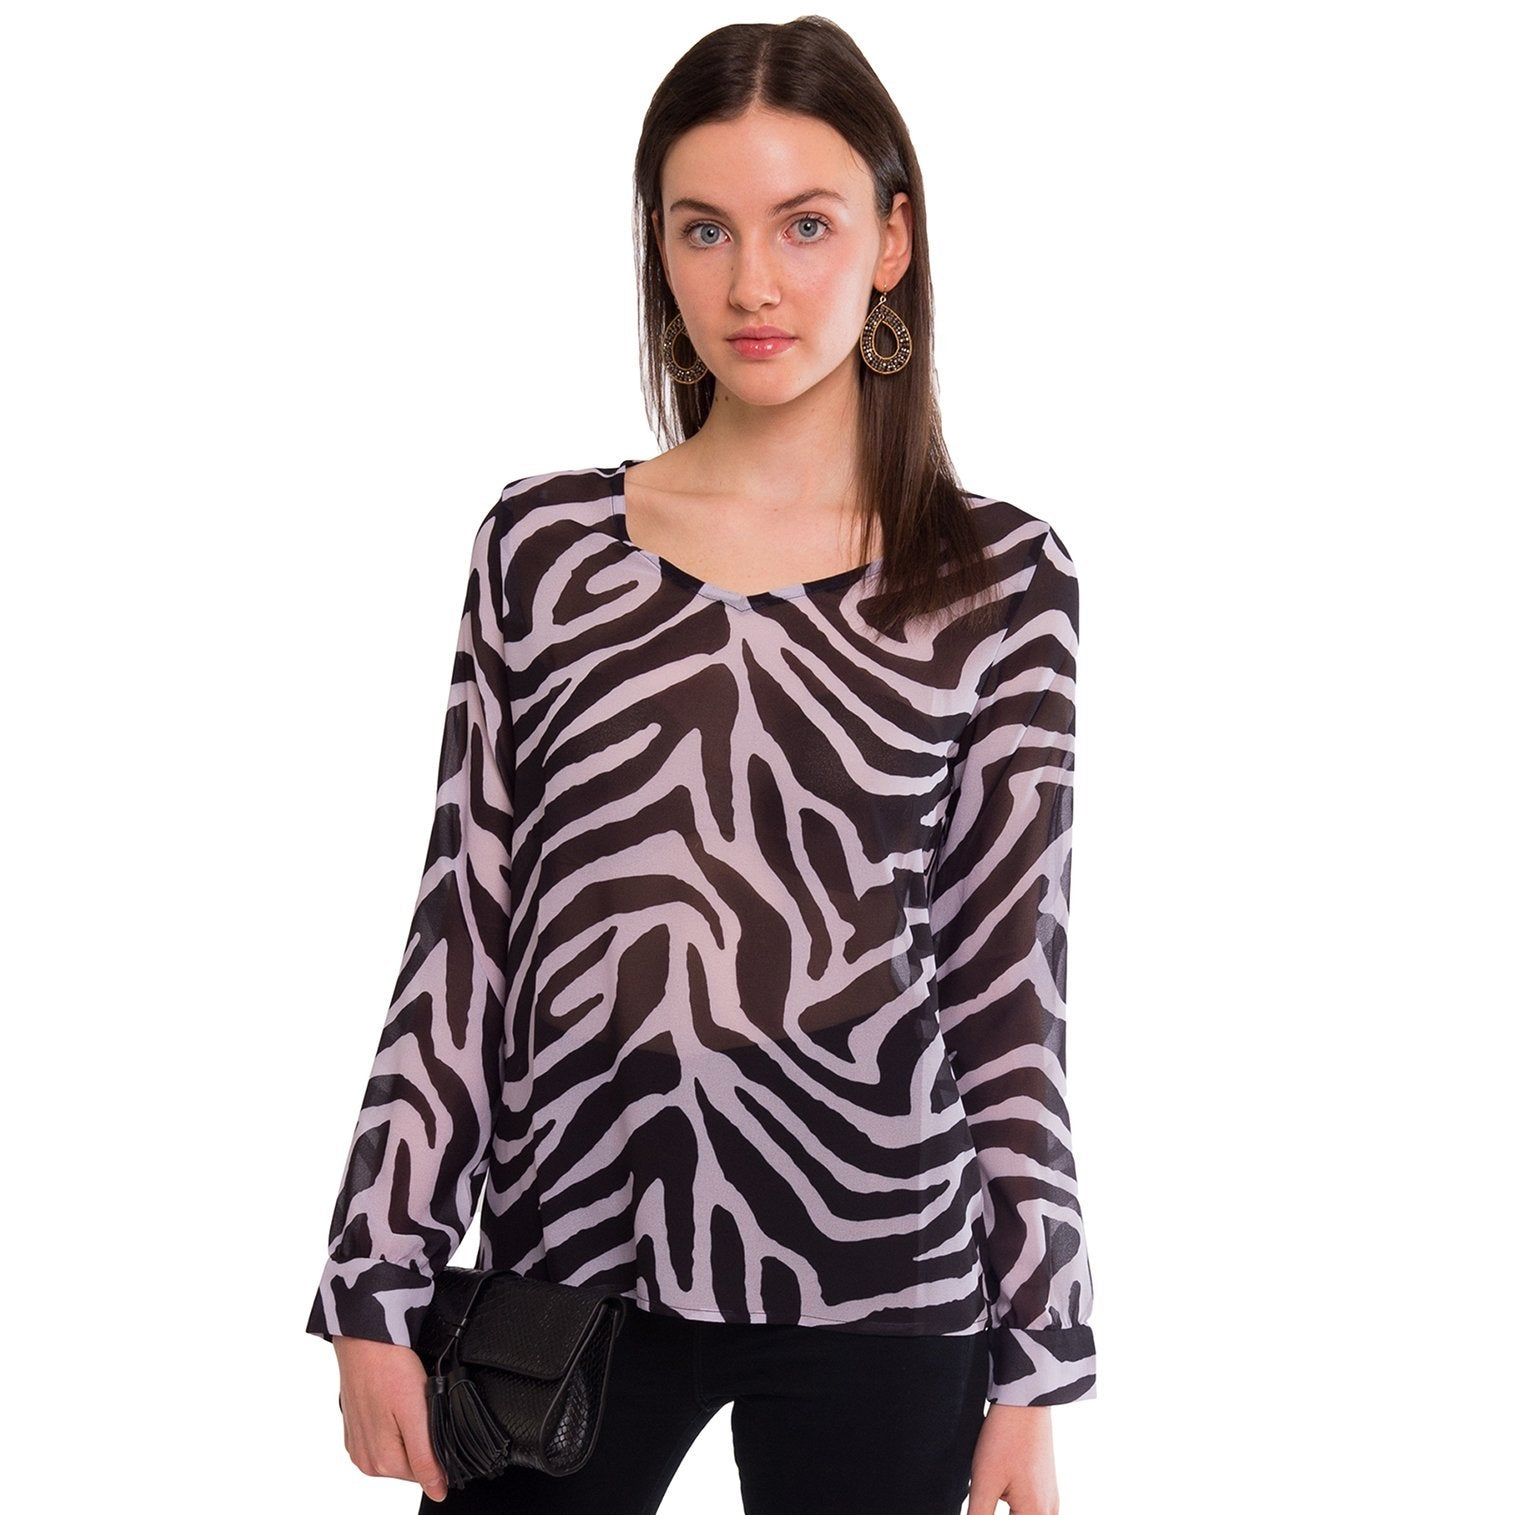 Haynes V-Neck Blouse in Lavender Zebra - Elizabeth Ackerman New York